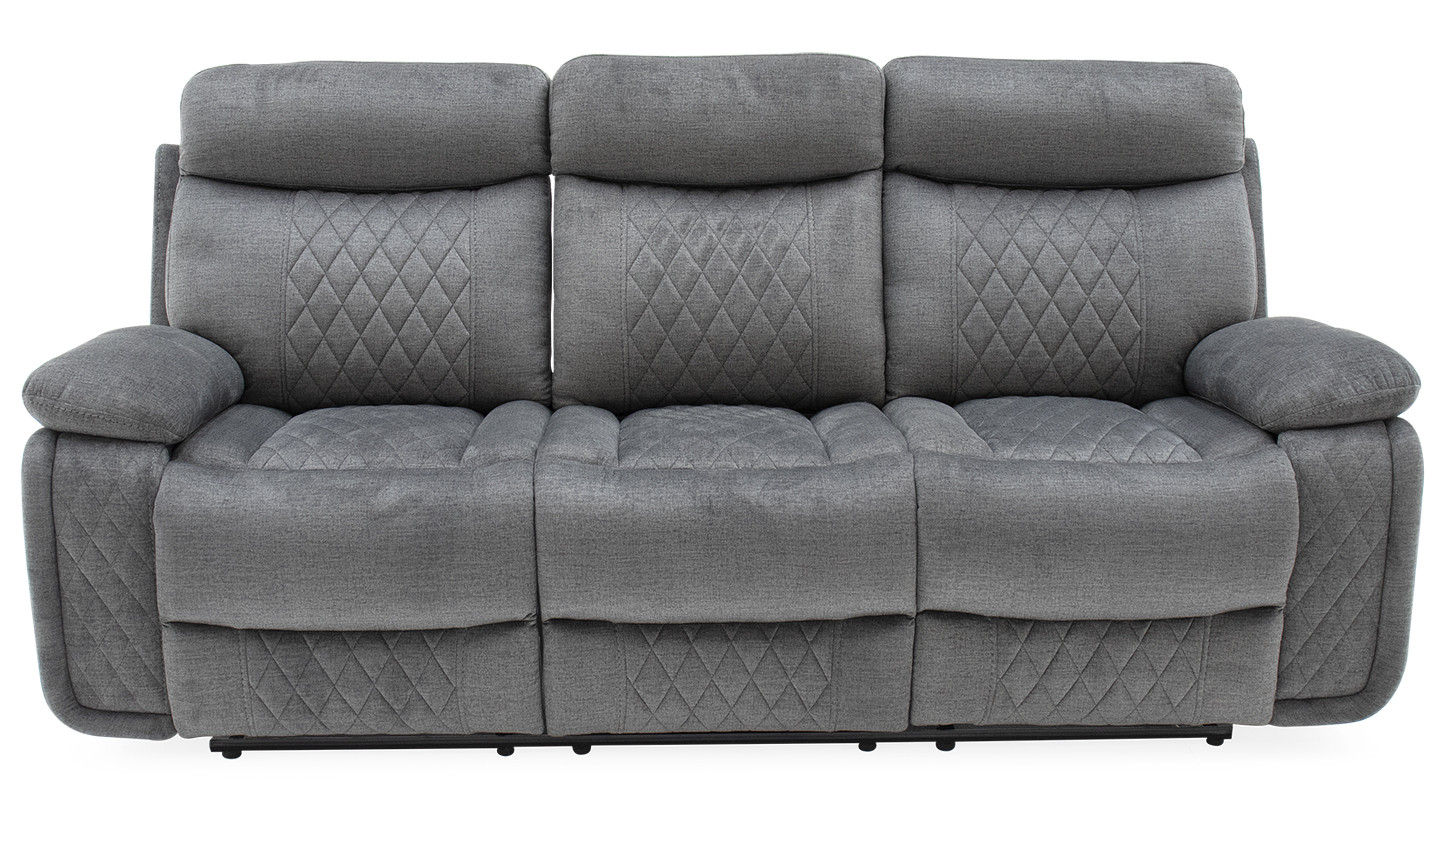 Eason 3 Seater Rec - Grey.jpg